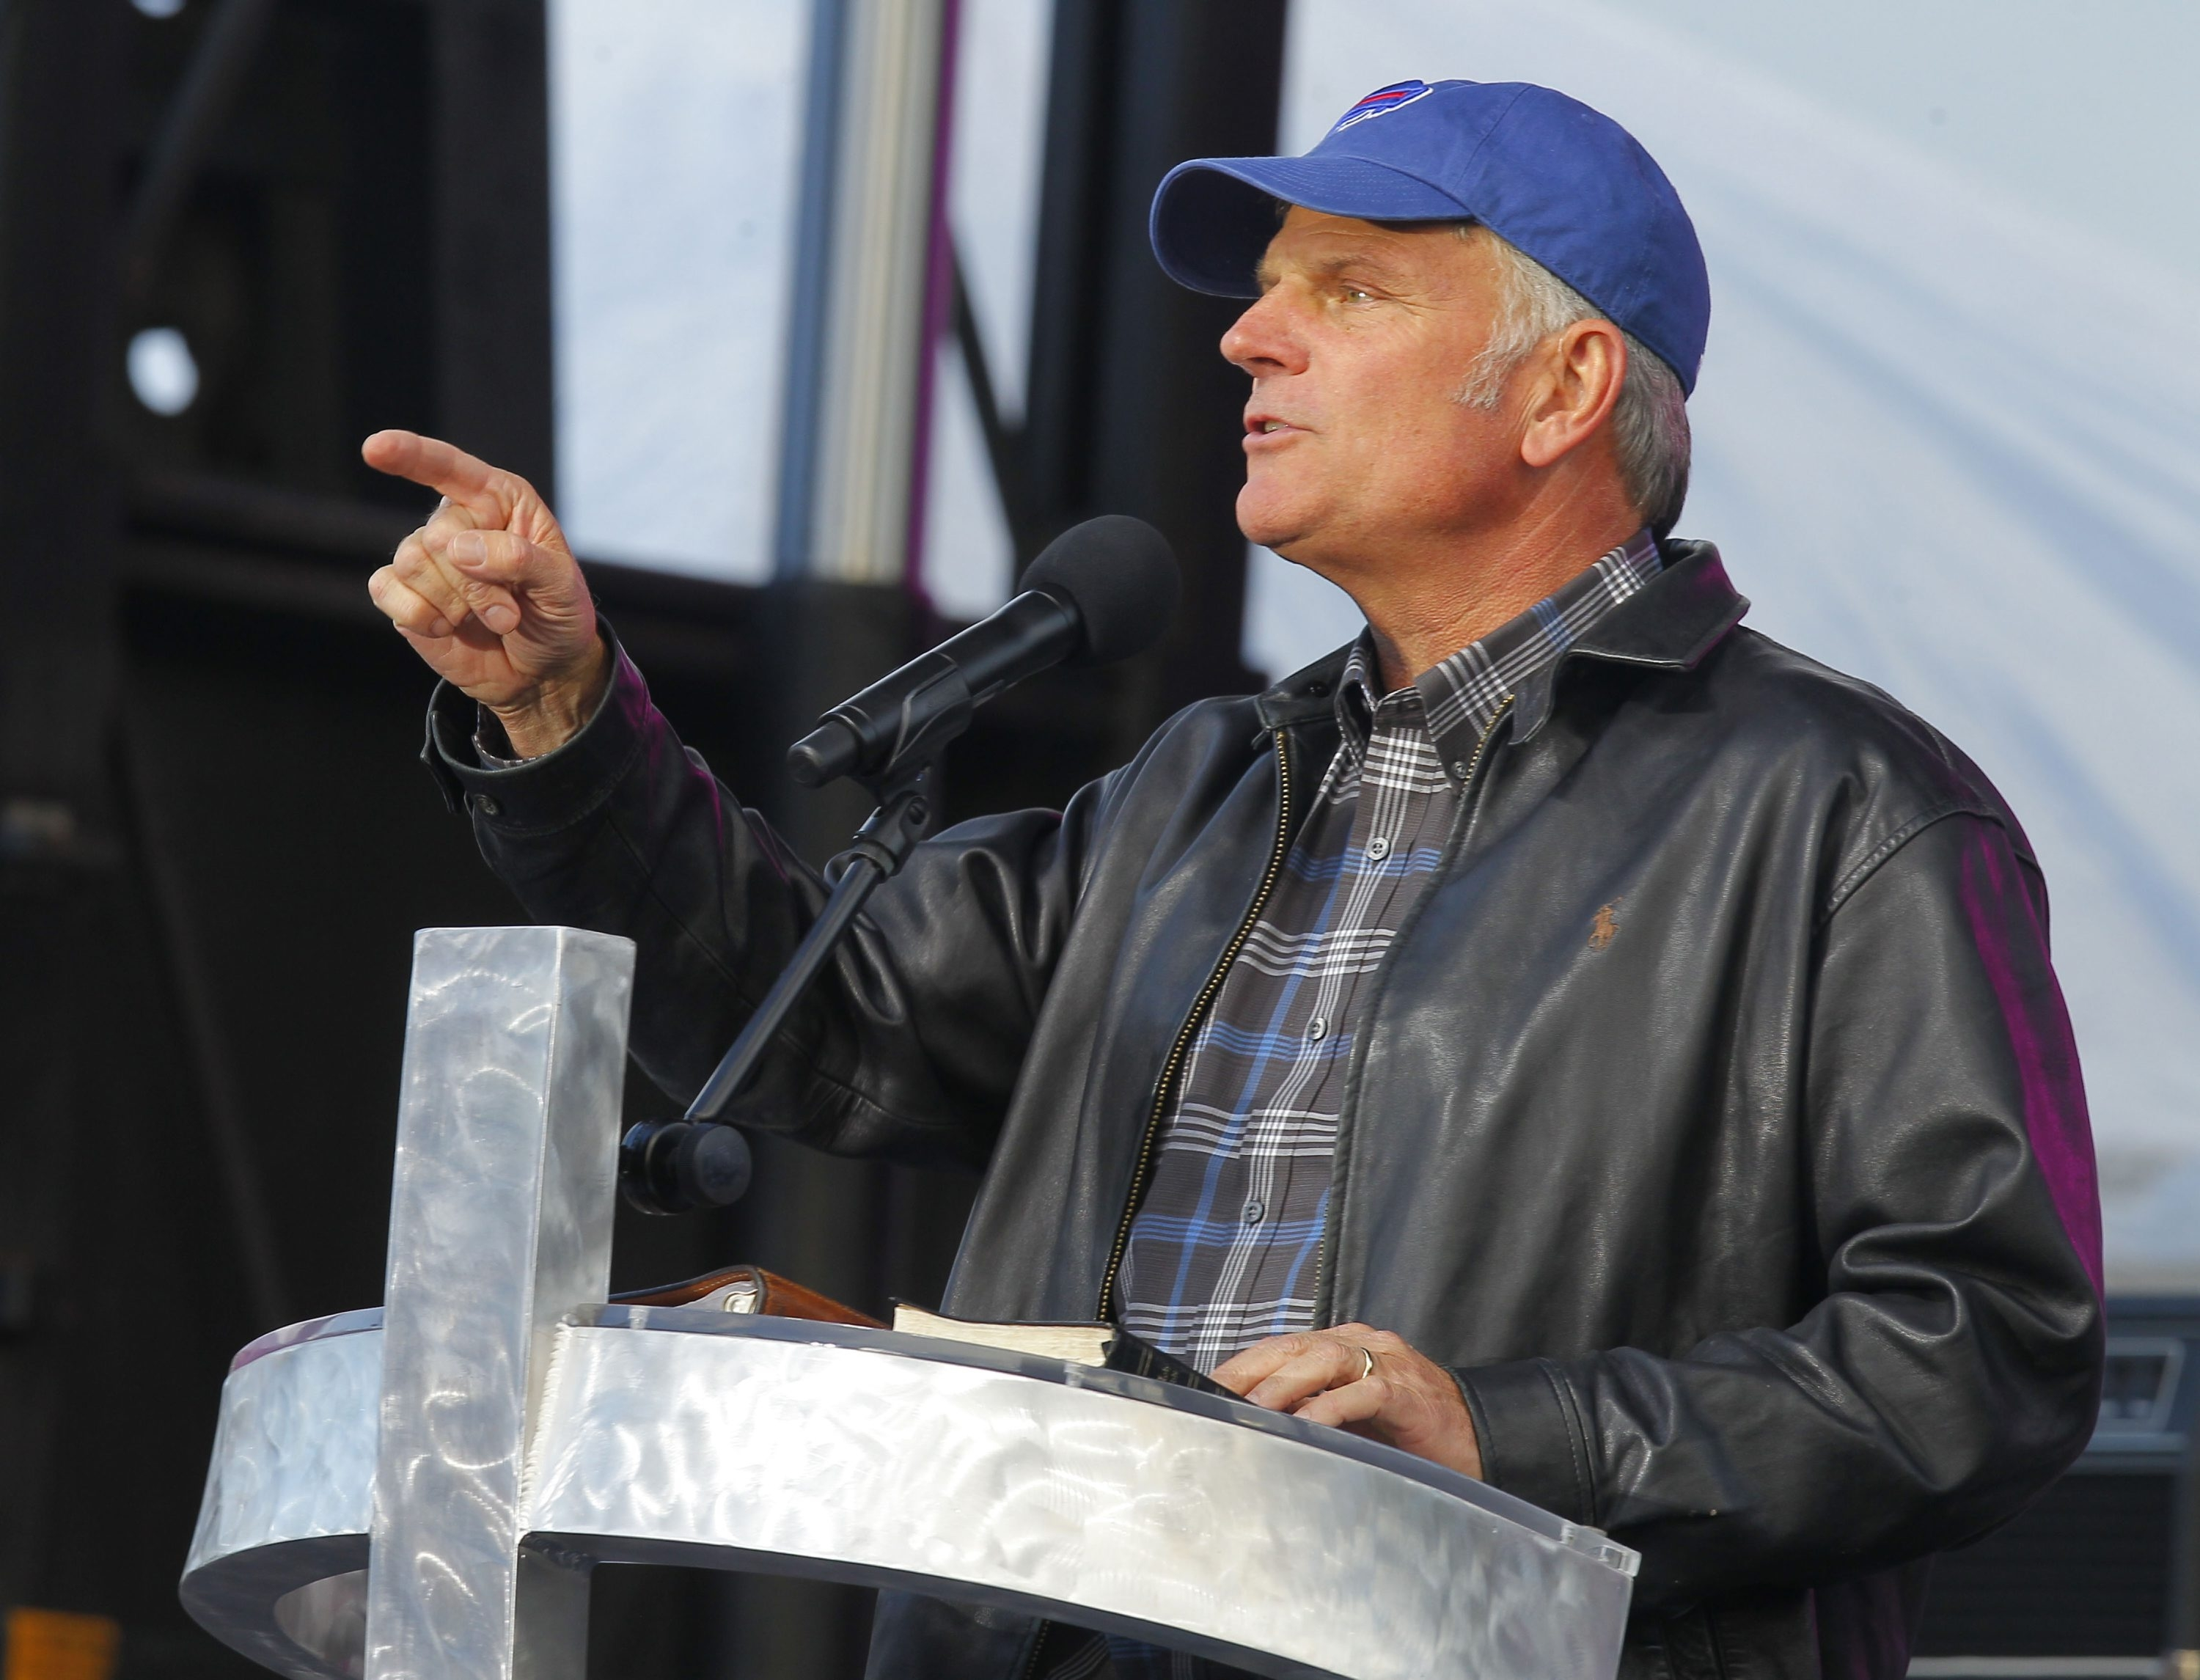 The Rev. Franklin Graham, wearing a Bills cap, tells the crowd about his commitment to Christ, and asks them to follow his lead.  John Hickey/Buffalo News